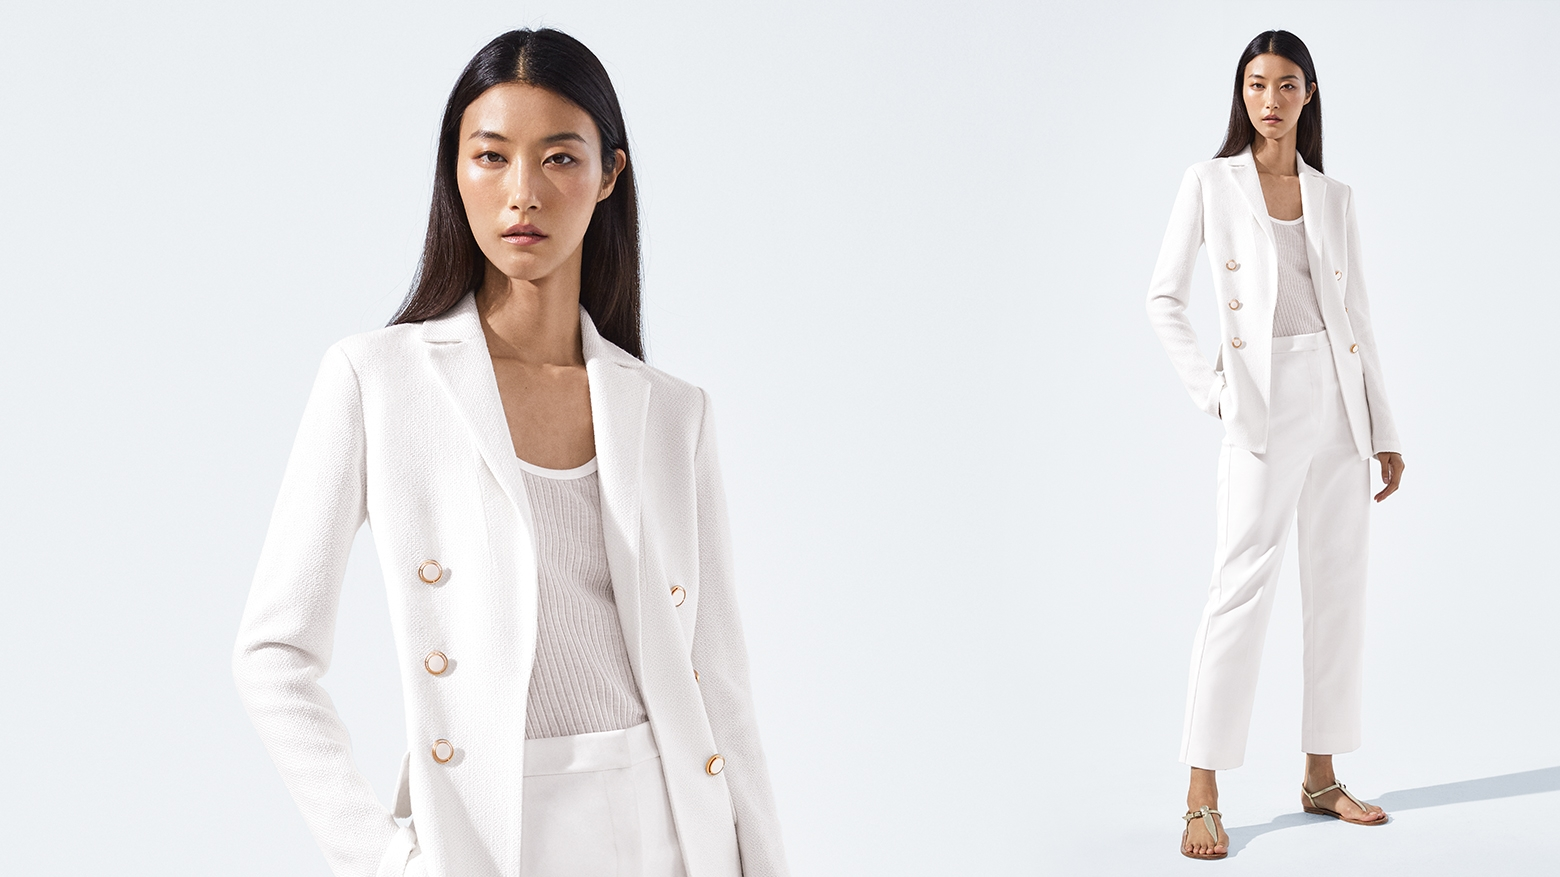 Model wearing all white Spring 2019 collection from Saint John